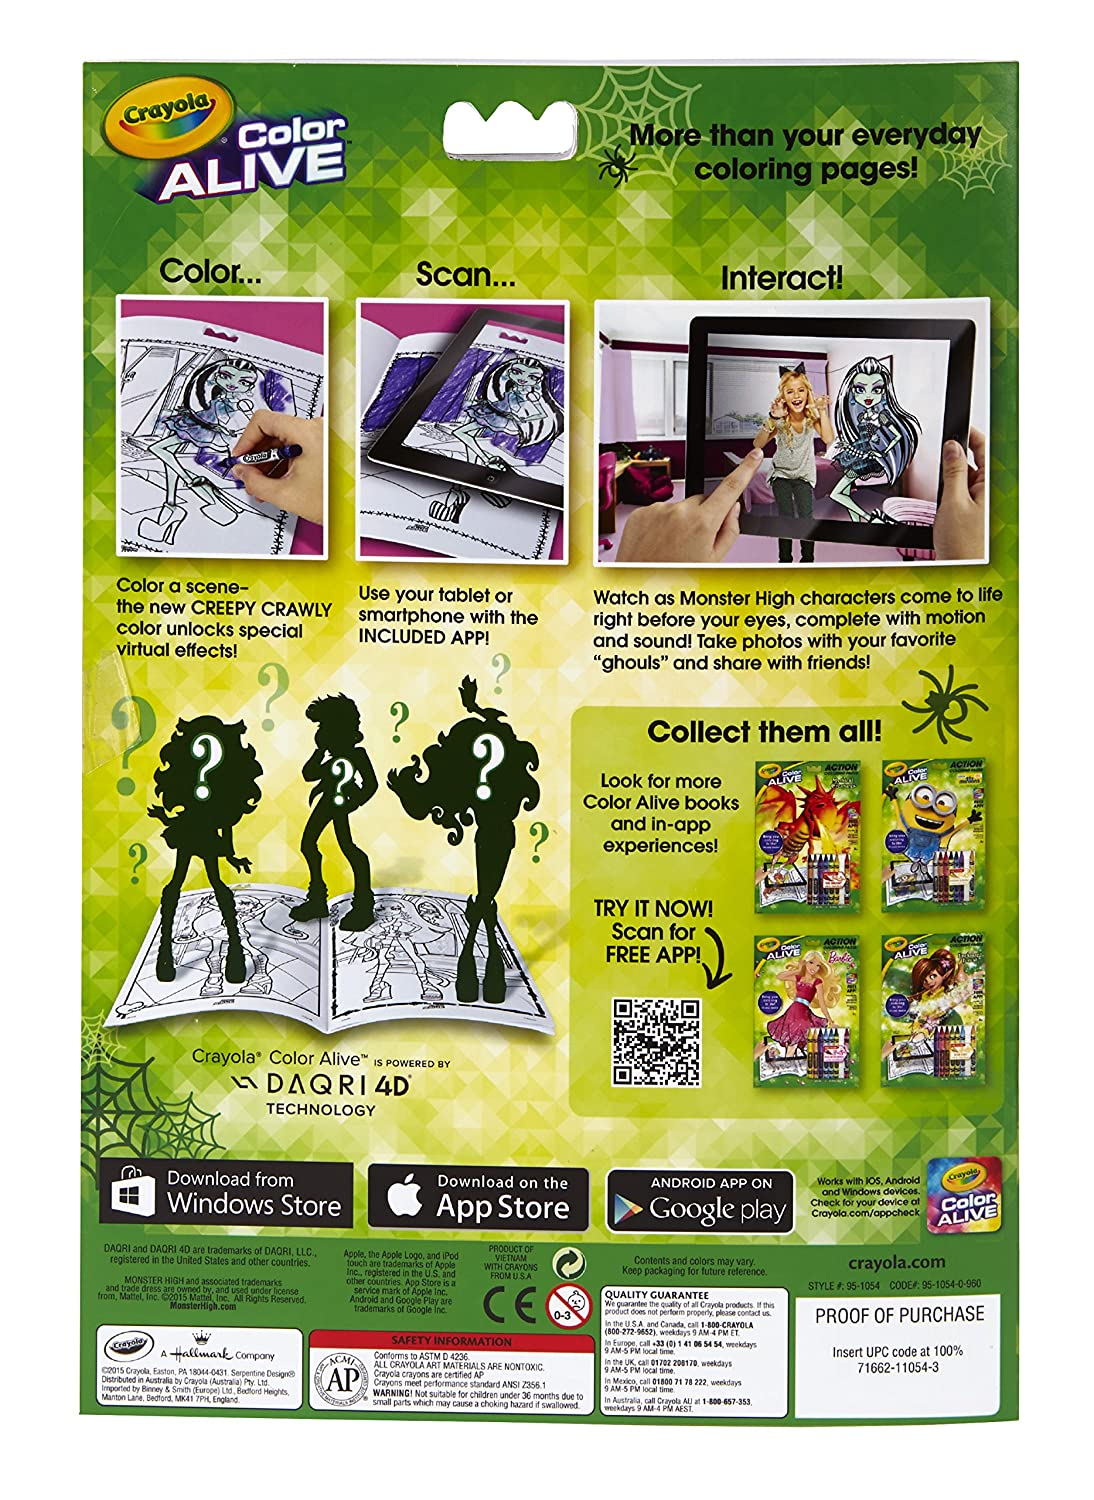 amazoncom crayola color alive monster high toys games - Color Alive Coloring Pages Minions